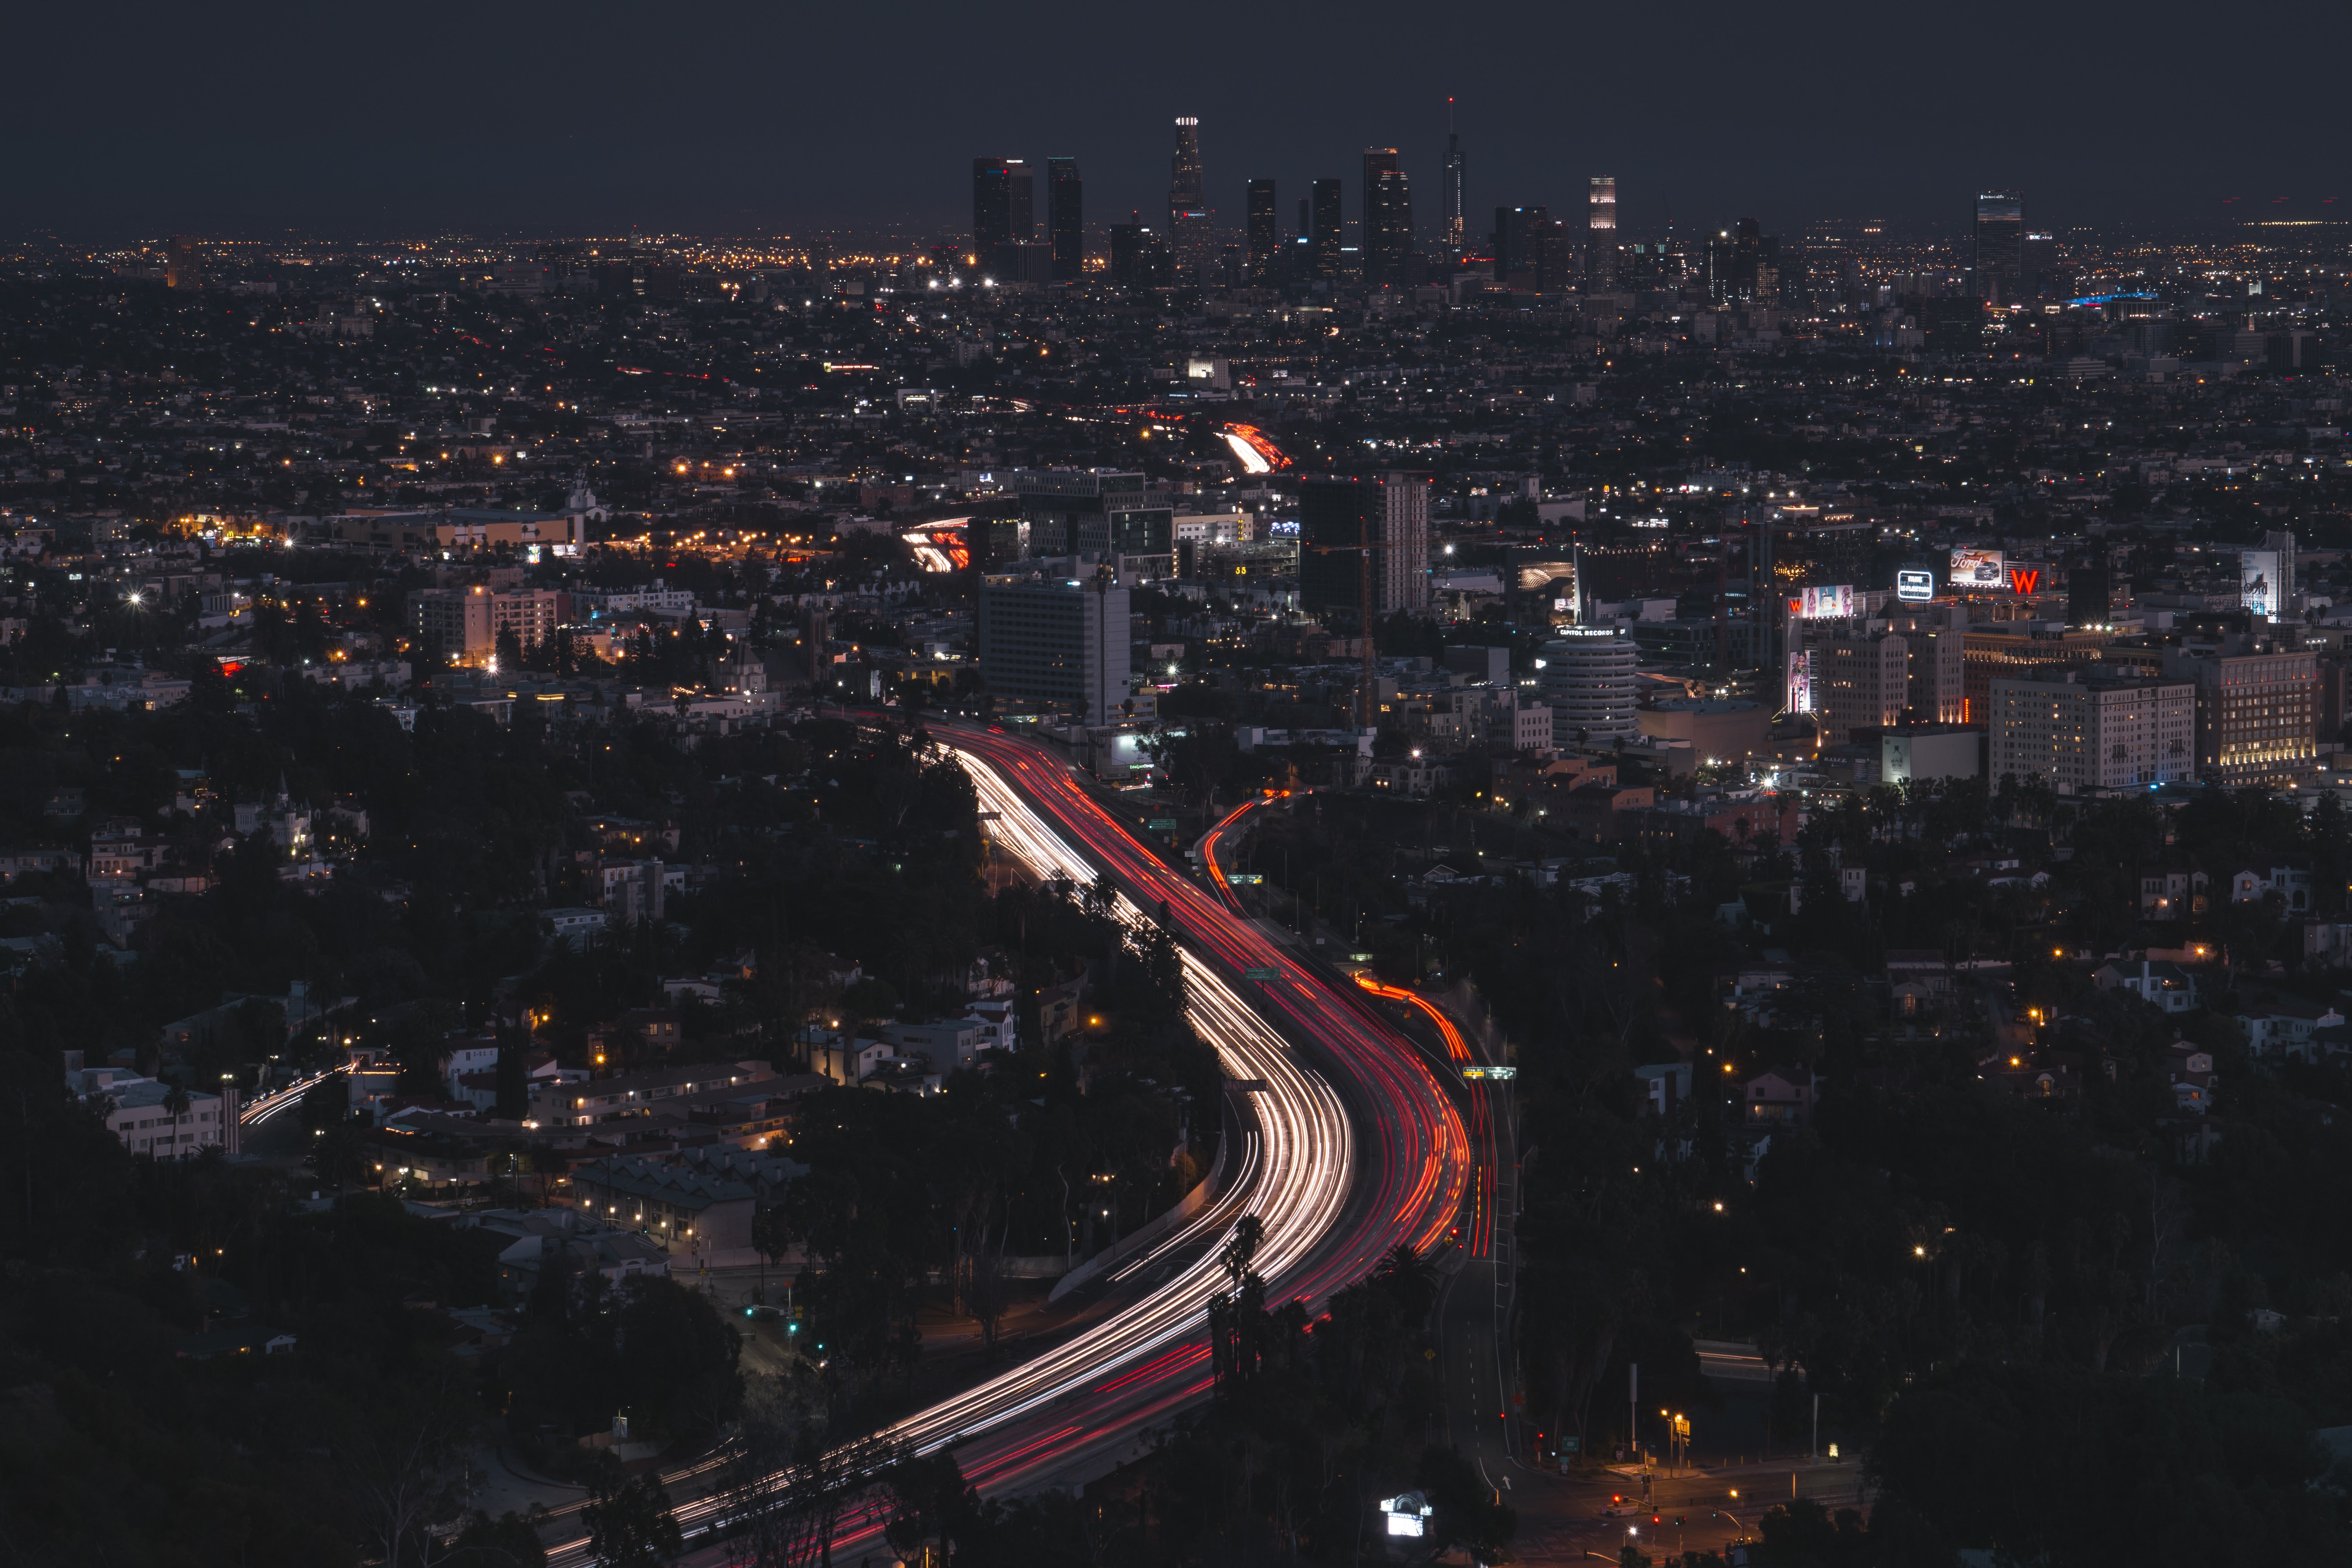 Long exposure of Los Angeles traffic at night with skyline